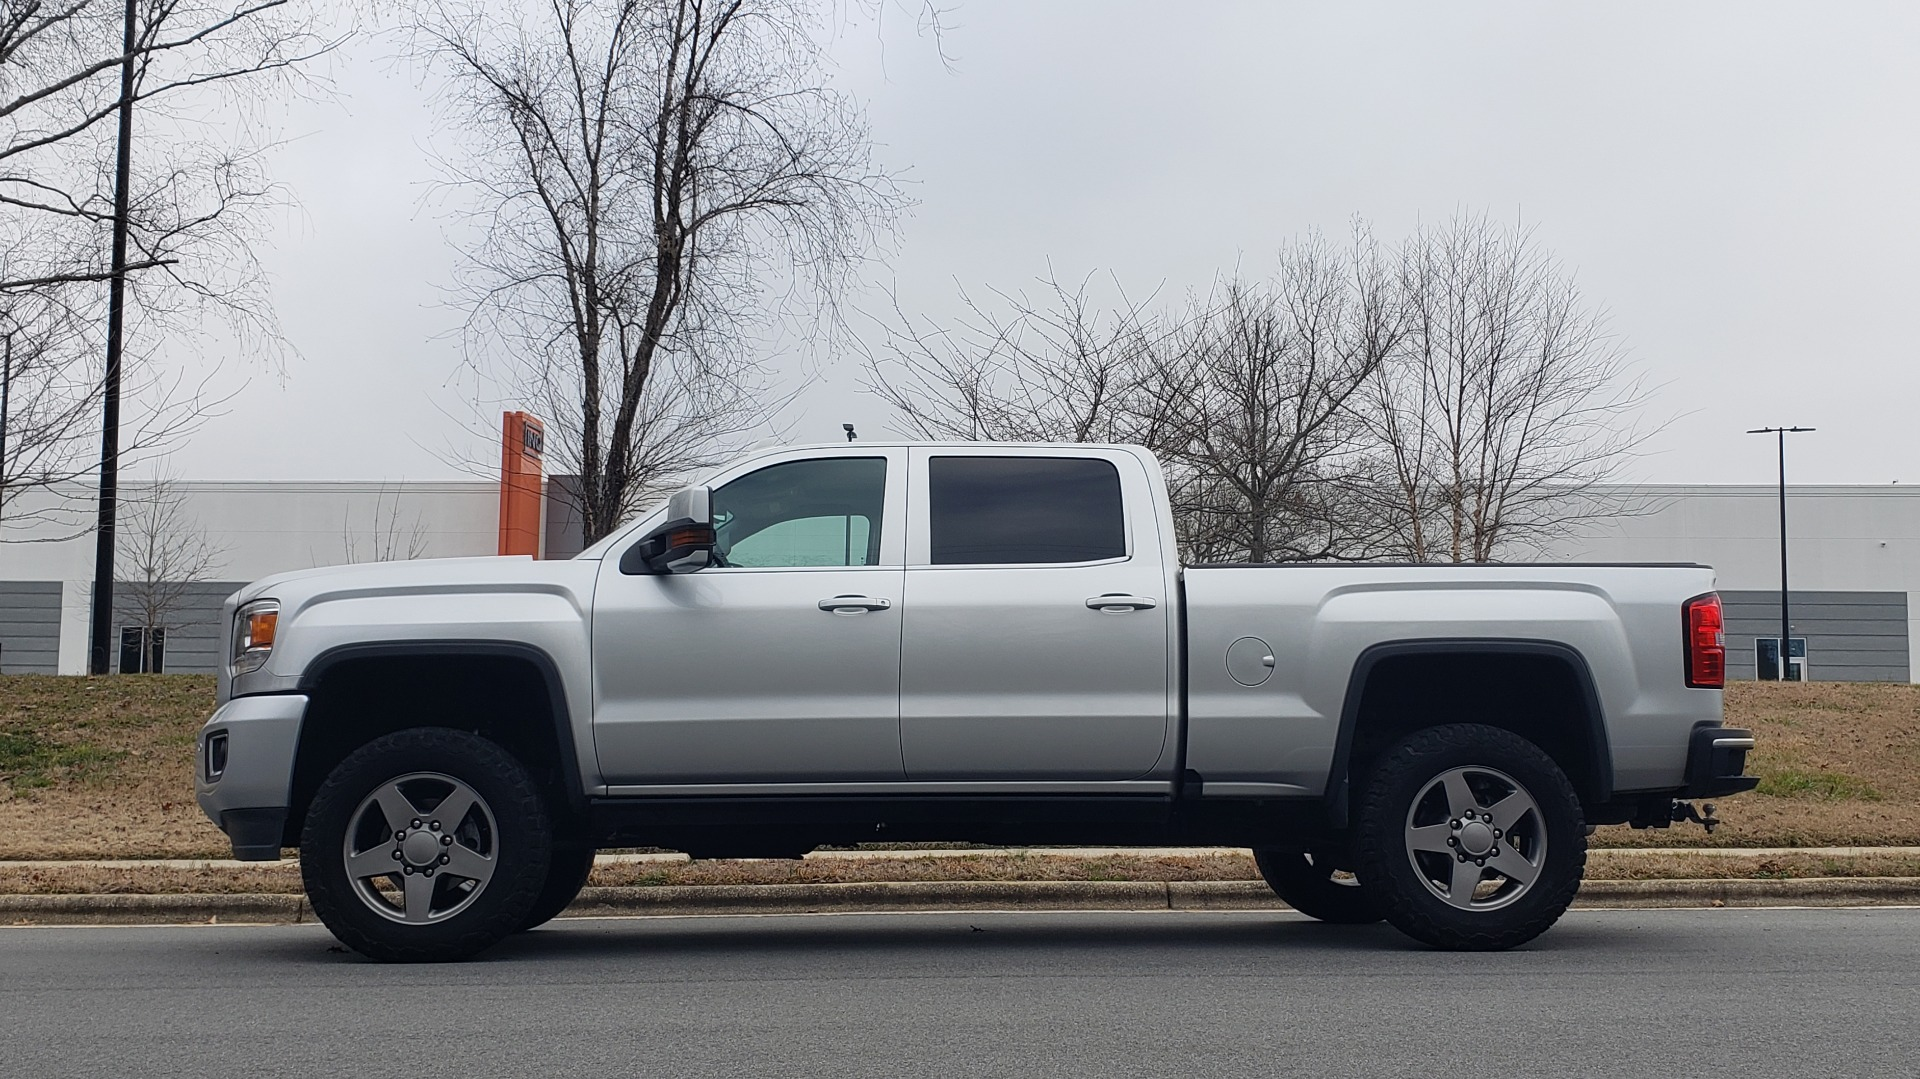 Used 2018 GMC SIERRA 2500HD DENALI 4X4 CREWCAB / 6.6L DURAMAX PLUS / NAV / SUNROOF / REARVIEW for sale $61,999 at Formula Imports in Charlotte NC 28227 3